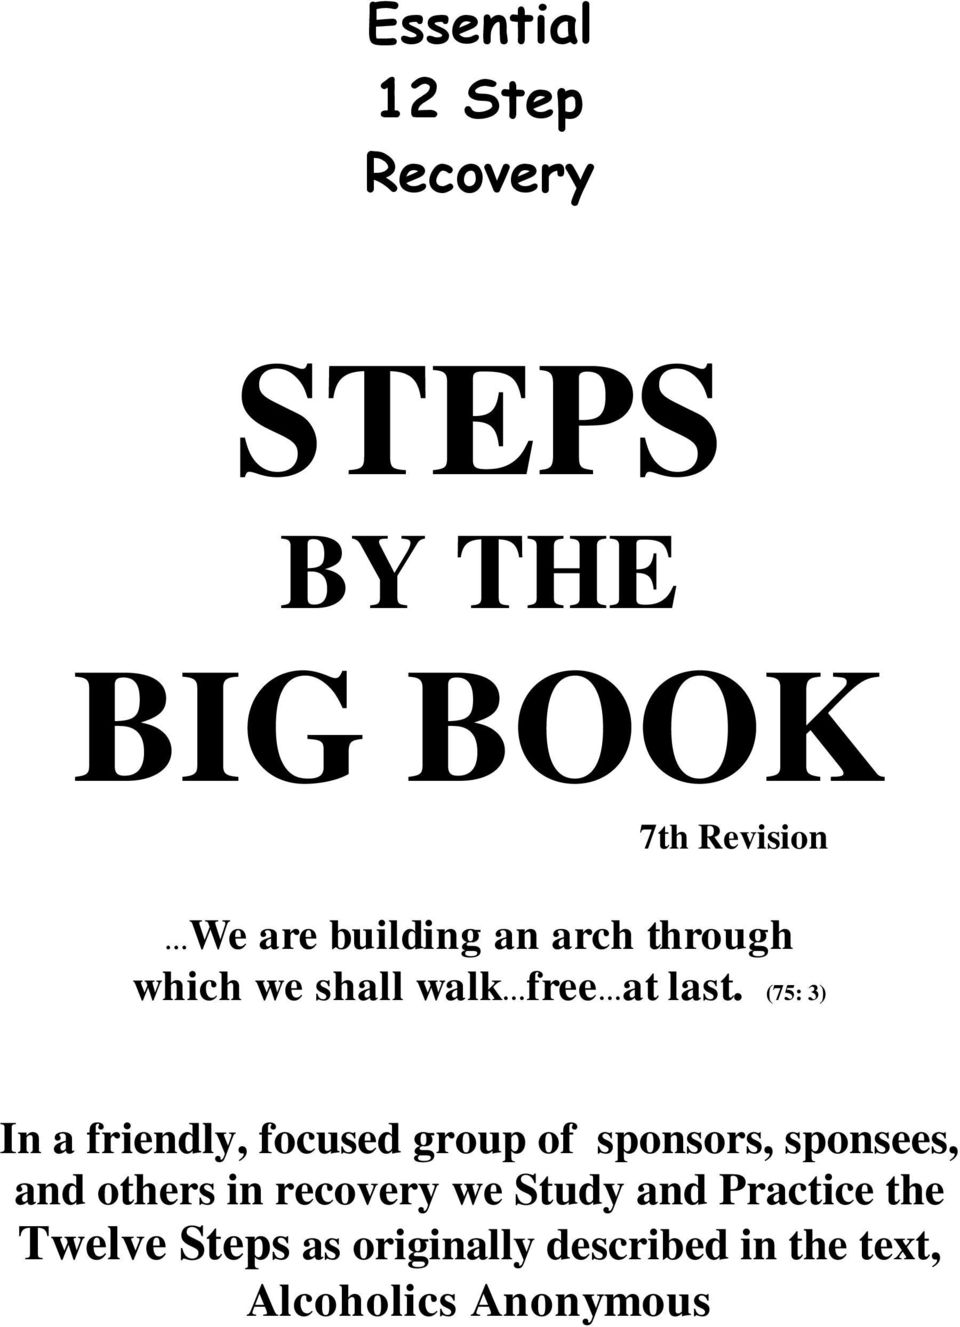 Worksheets Twelve Steps Of Aa Worksheet essential 12 step recovery steps by the big book we are building an 75 3 in a friendly focused group of sponsors sponsees